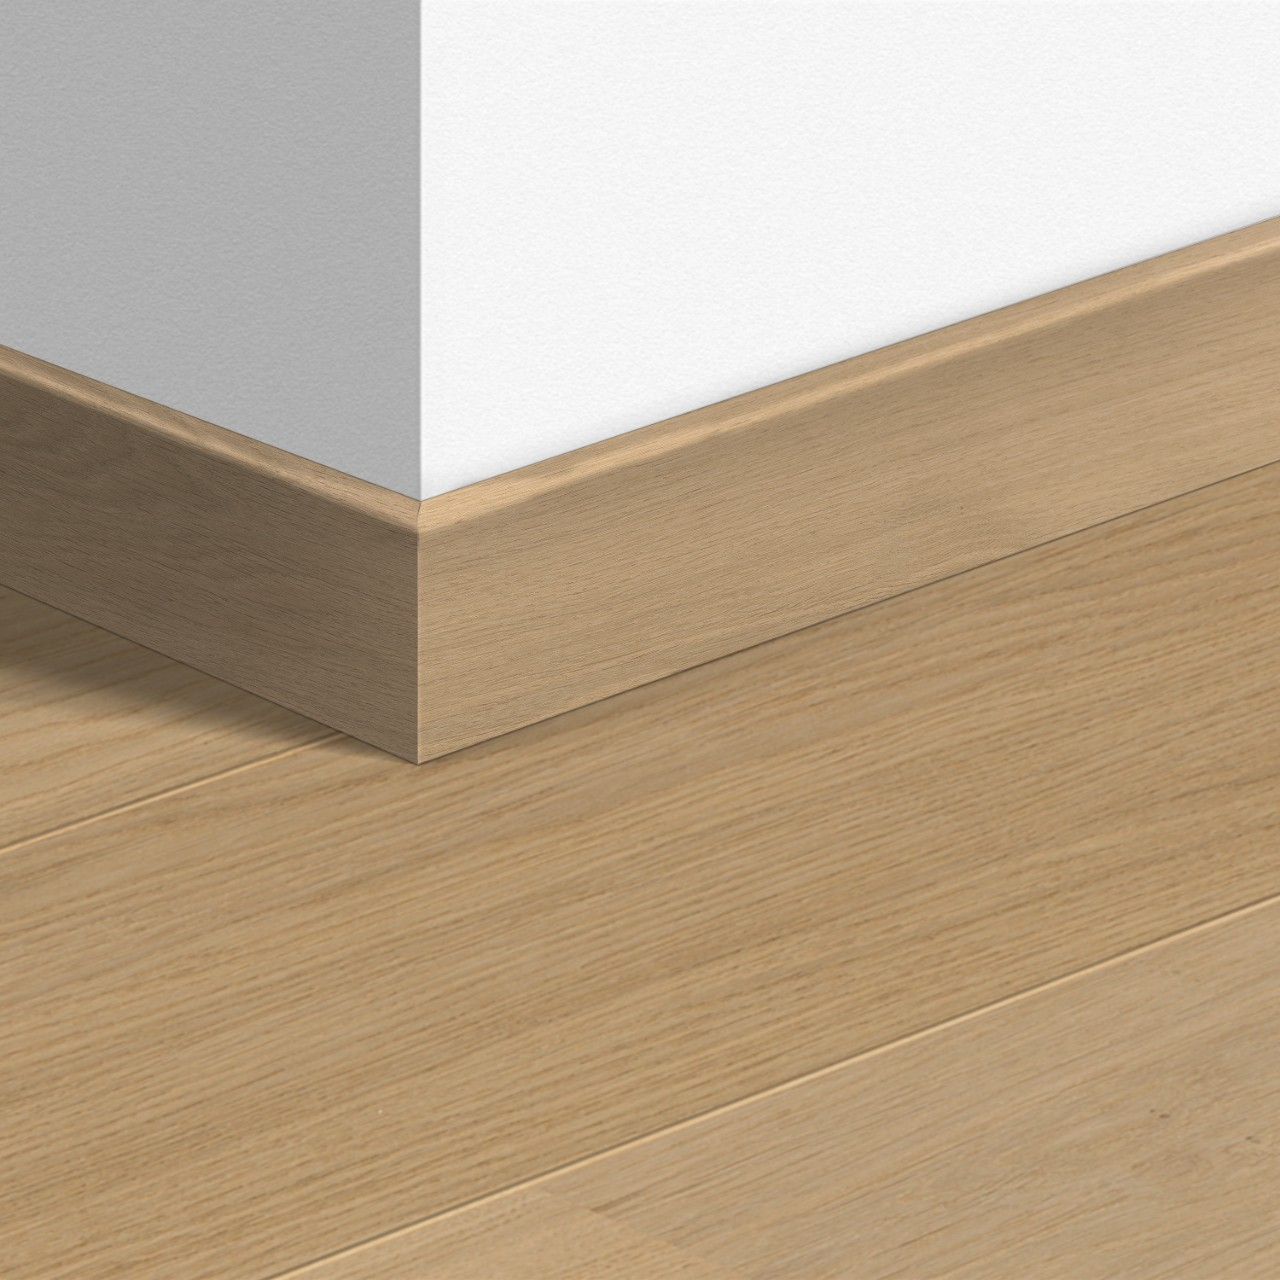 QSWPPSKR Parquet Accessories Parquet Skirting Board (matching colour) QSWPPSKR01341